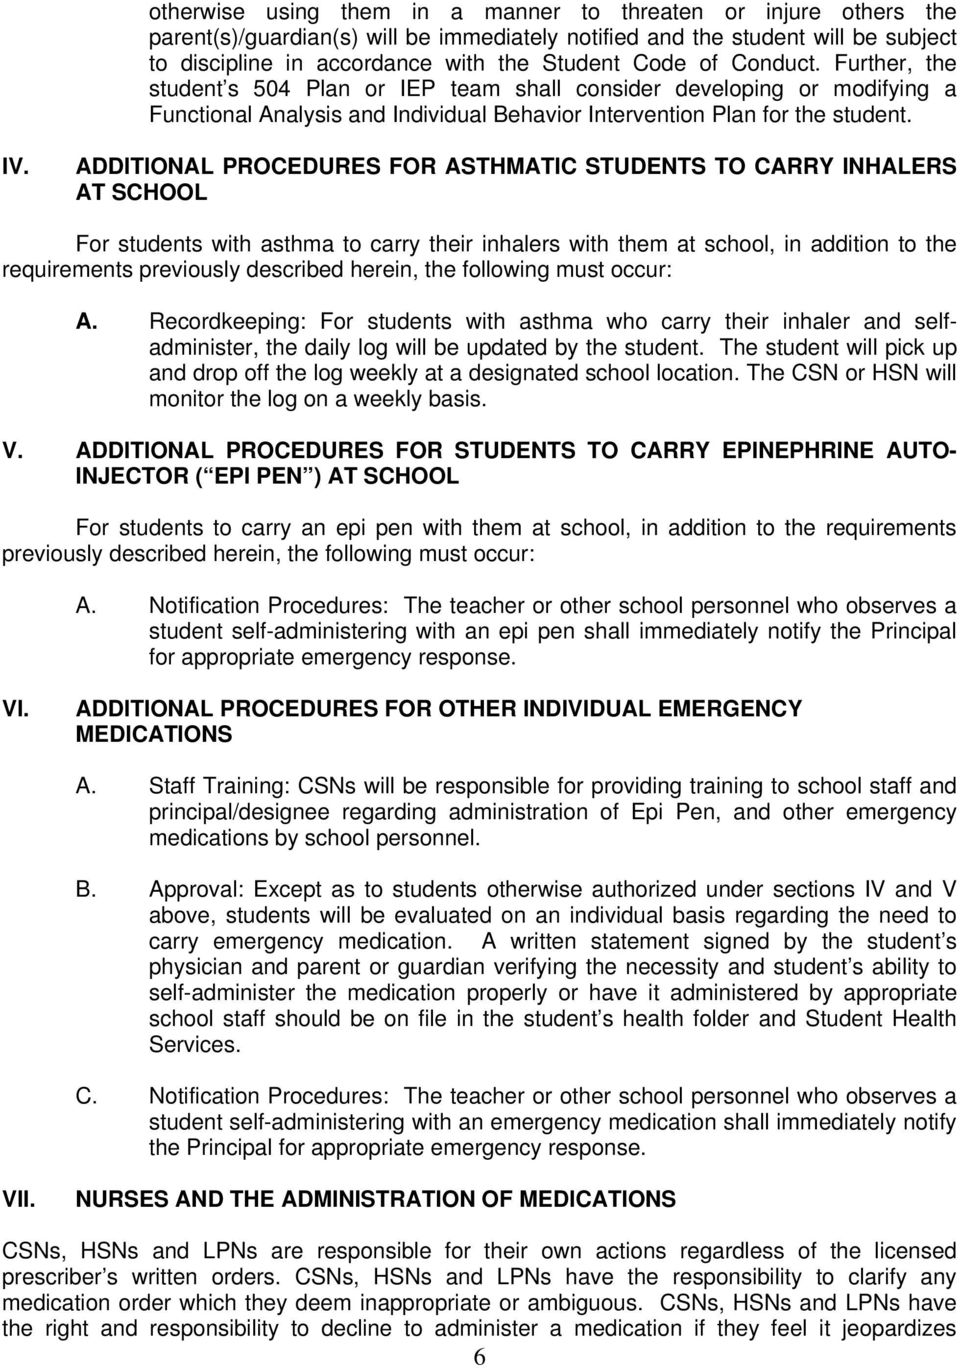 ADDITIONAL PROCEDURES FOR ASTHMATIC STUDENTS TO CARRY INHALERS AT SCHOOL For students with asthma to carry their inhalers with them at school, in addition to the requirements previously described